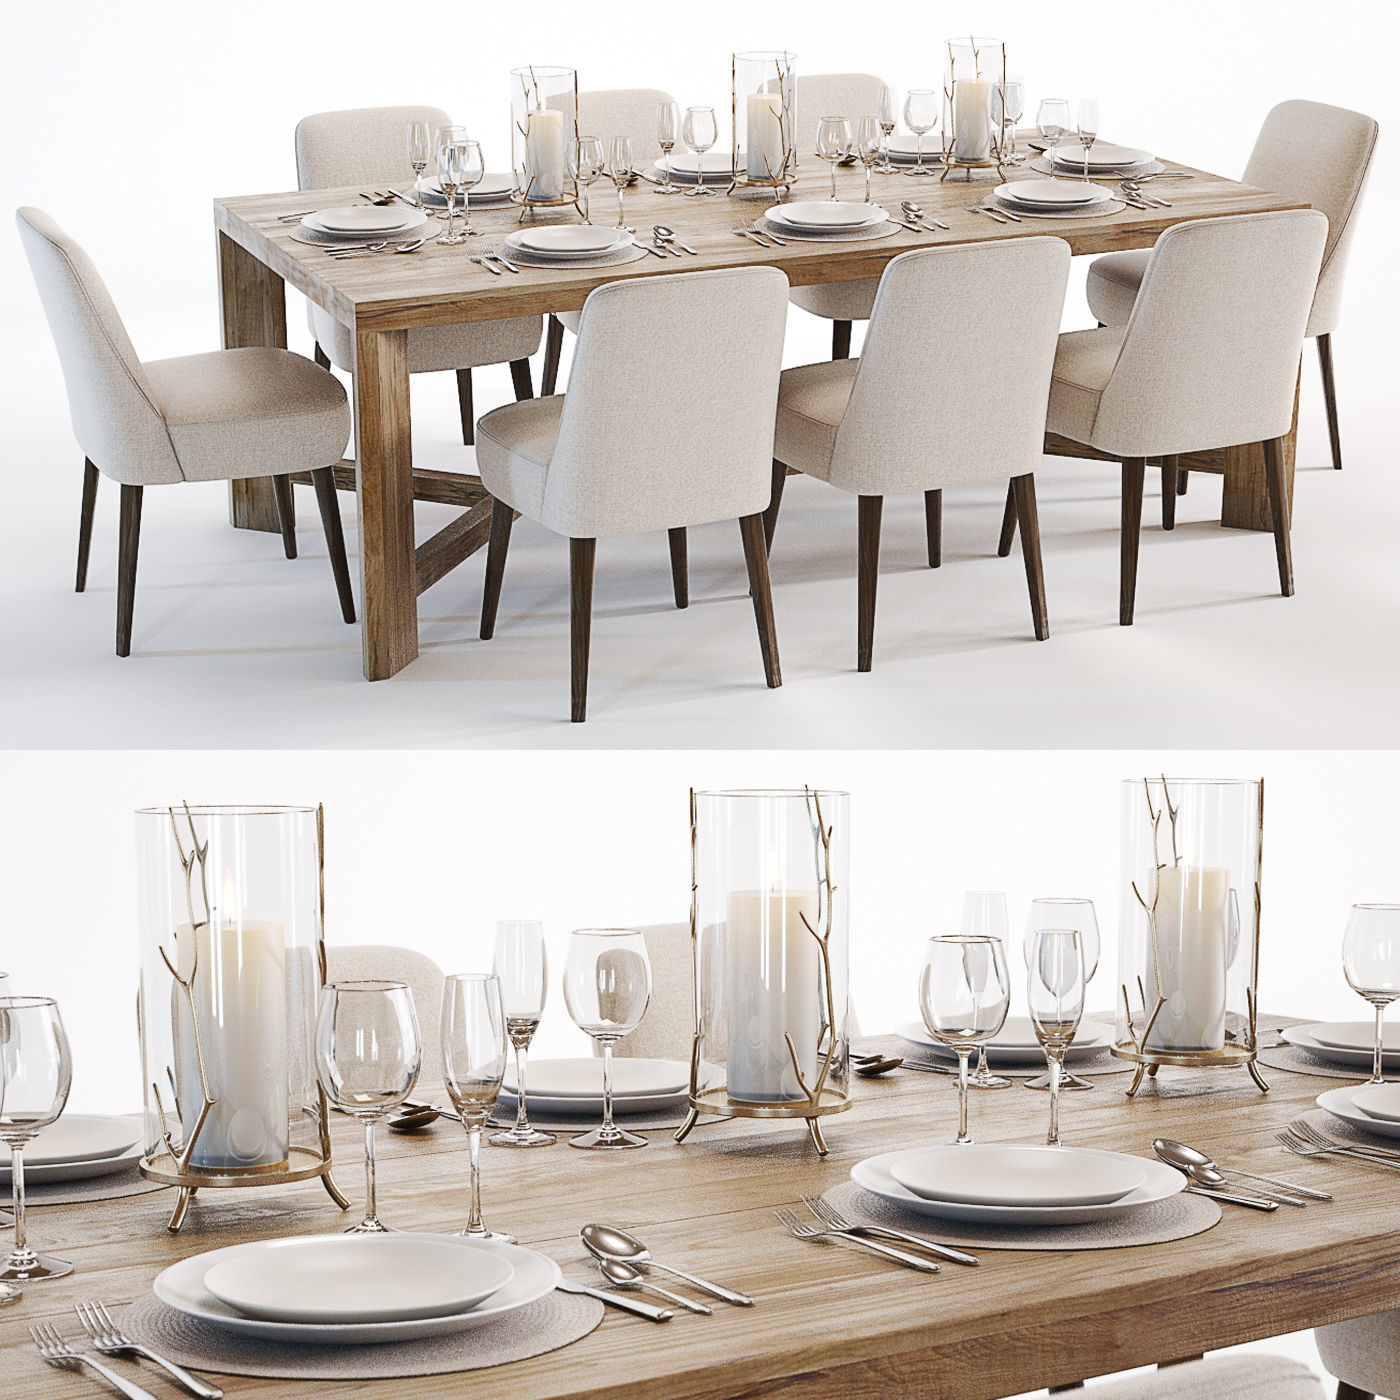 Curations Limited Gernoble and Torino table set